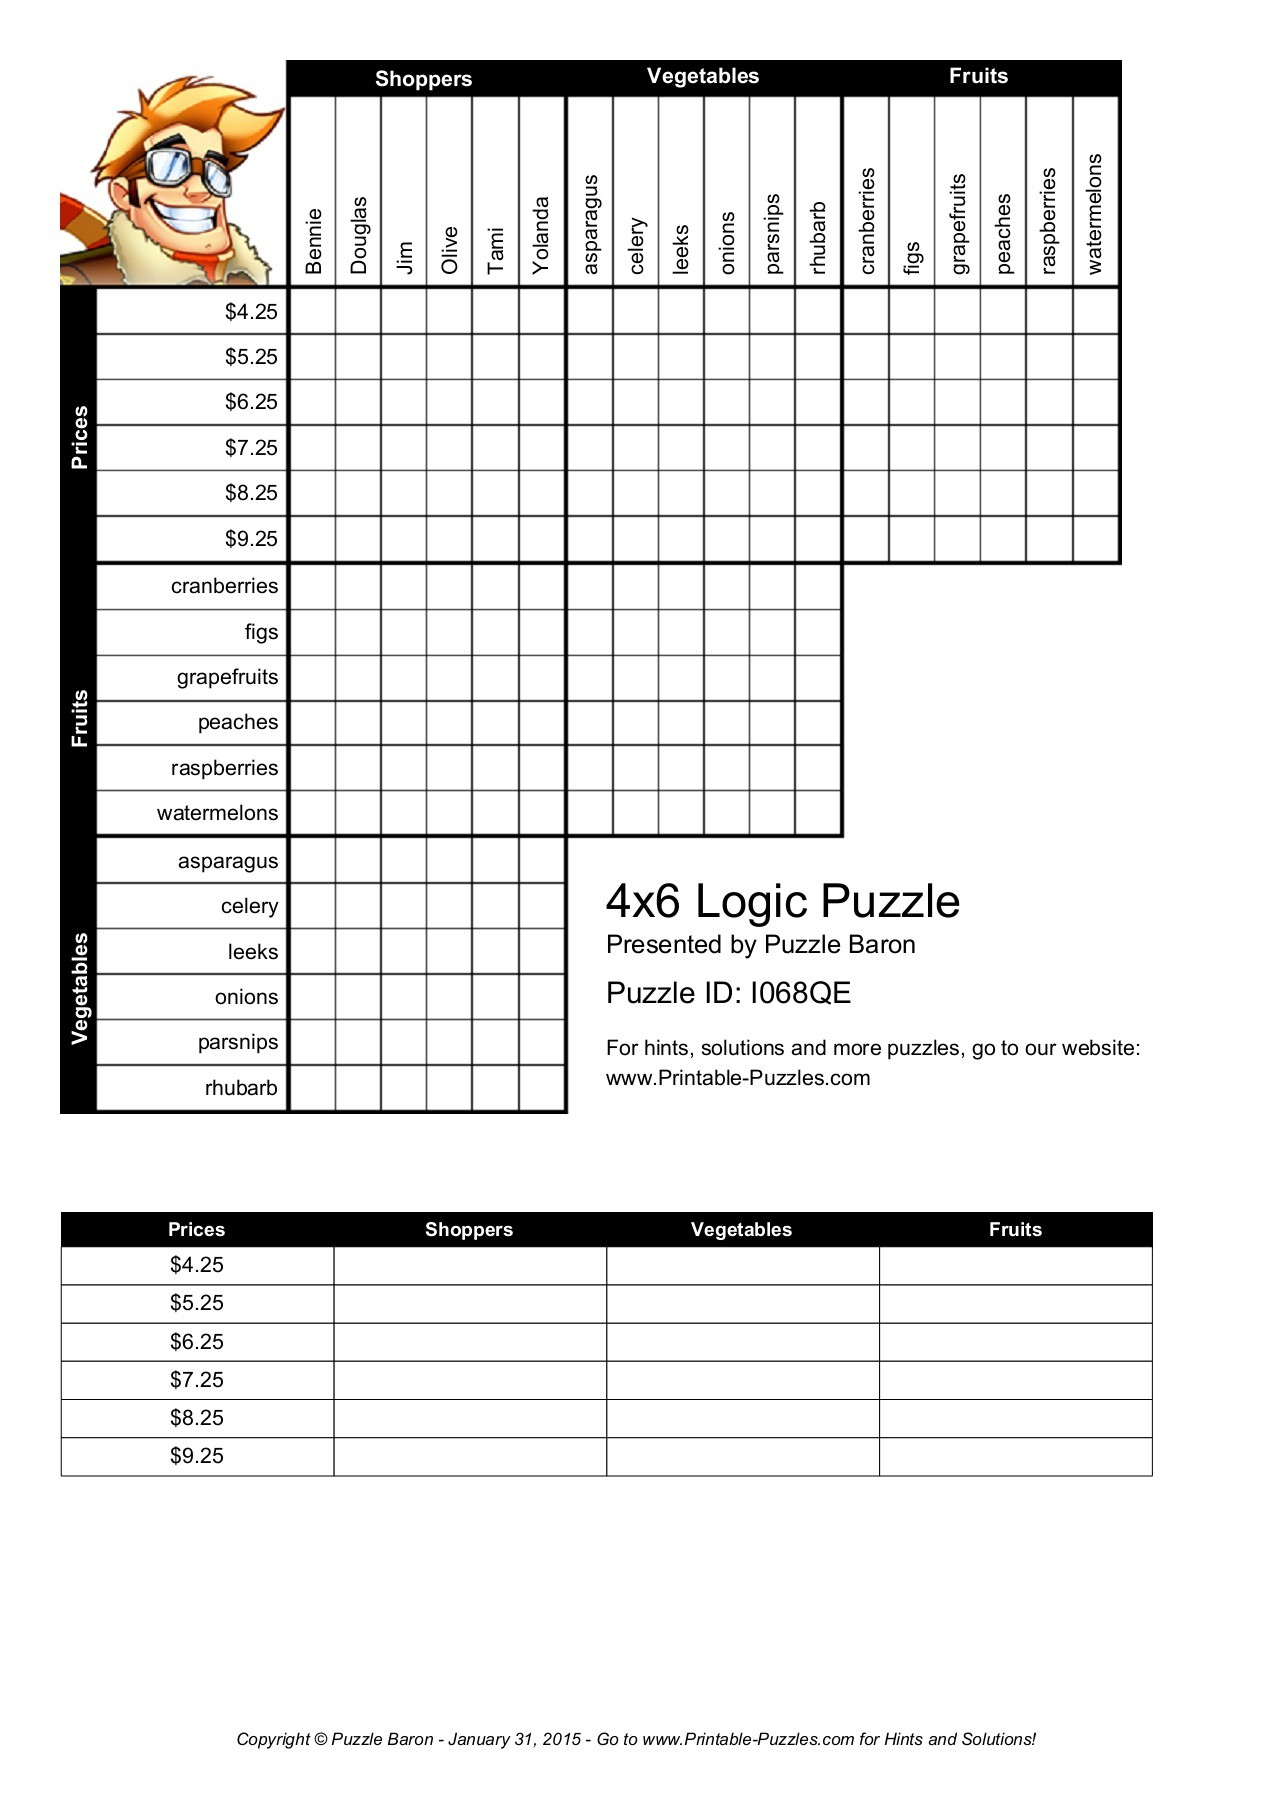 It is a picture of Logic Puzzles for Kids Printable intended for beginner programmer